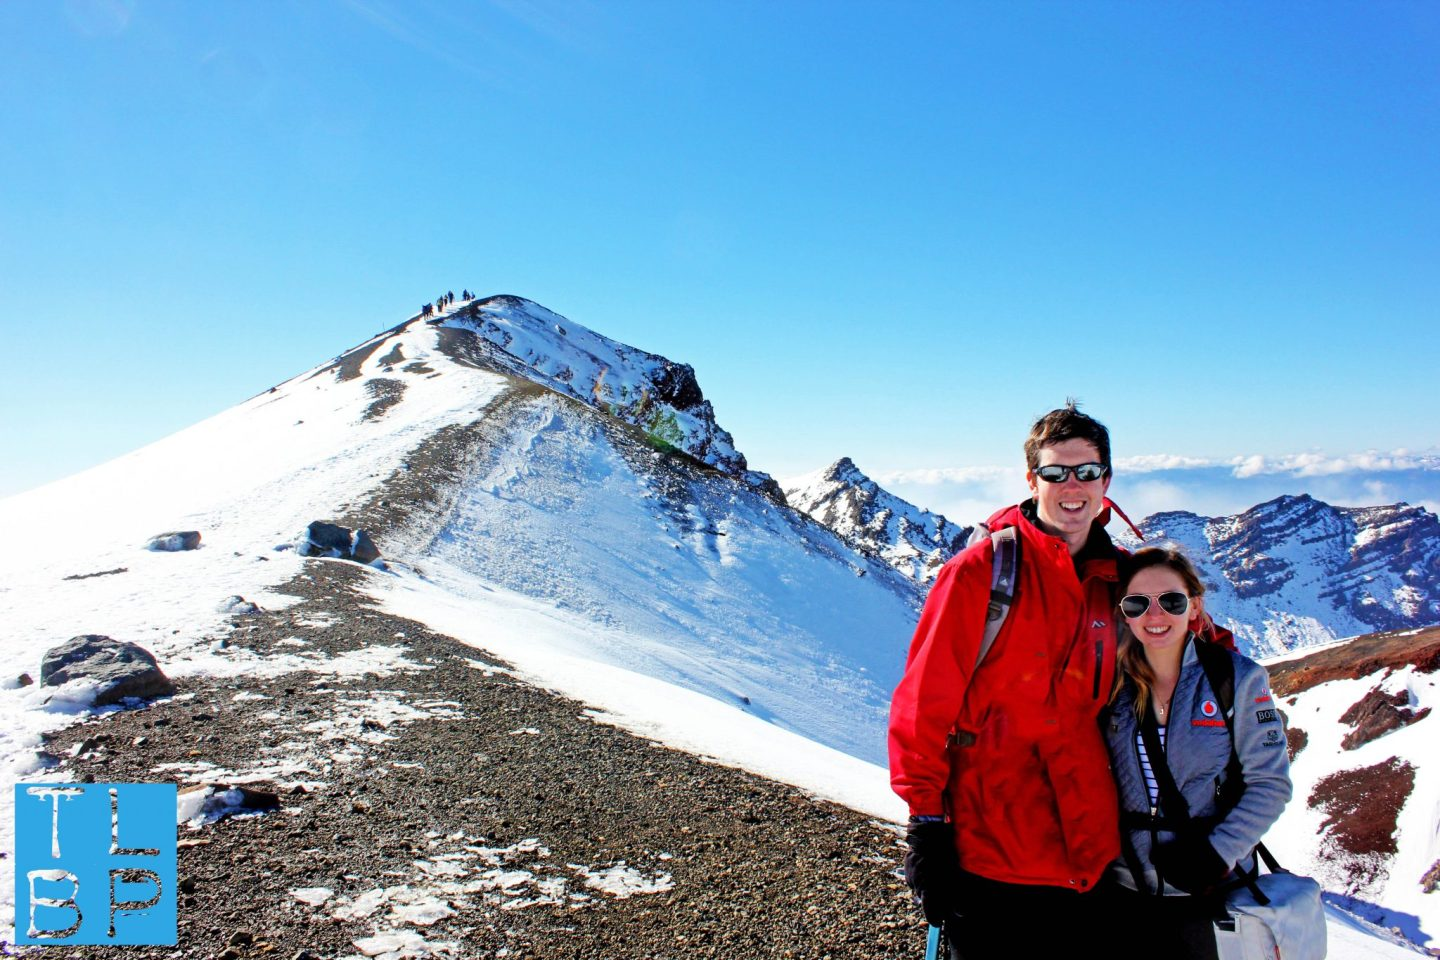 The Tongariro Crossing – An 18km hike across snow and ice